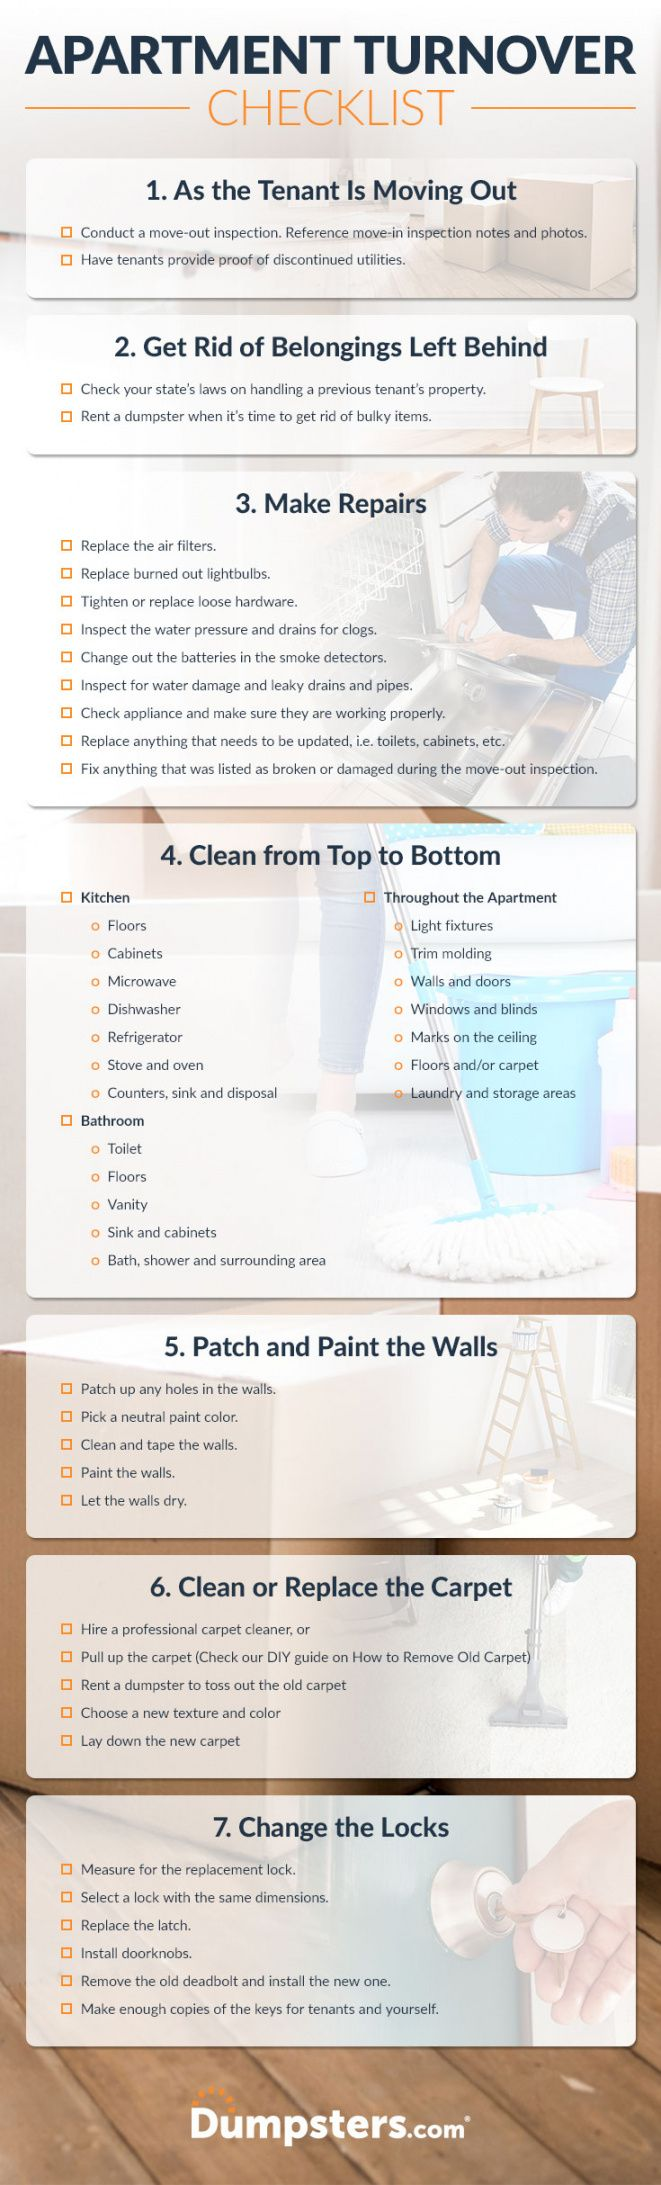 printable a landlord apartment turnover cleaning checklist  dumpsters apartment turnover checklist template